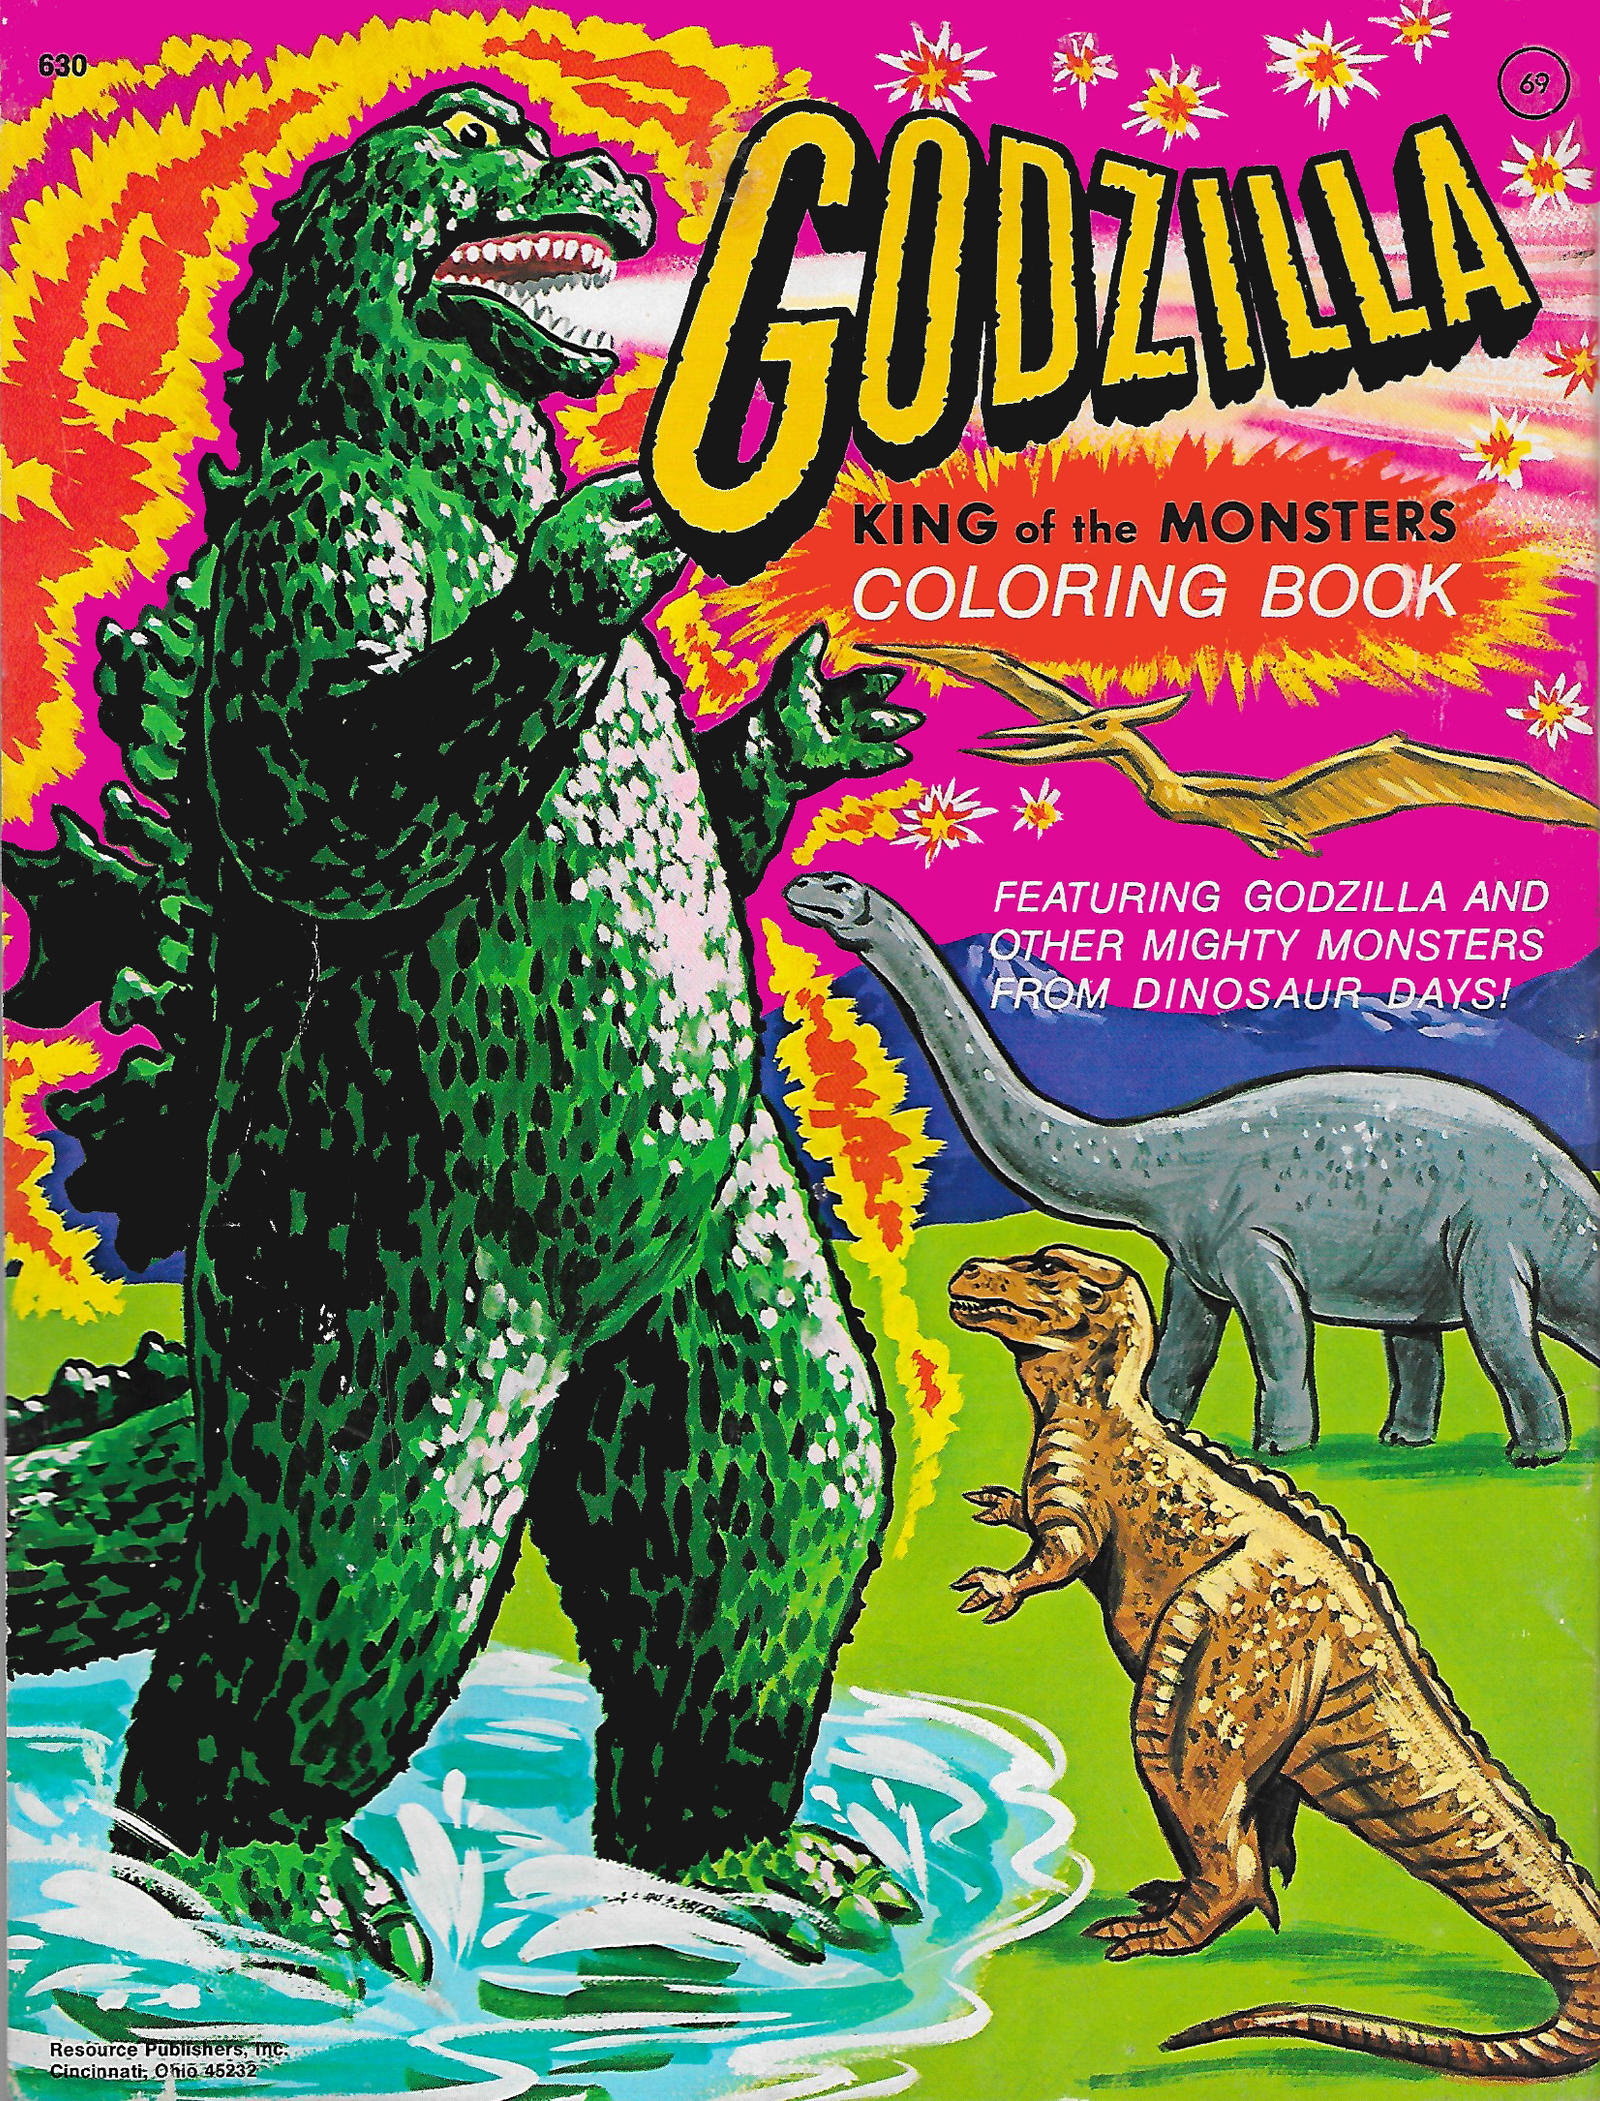 Godzilla Coloring Book 1977 by Malidicus on DeviantArt